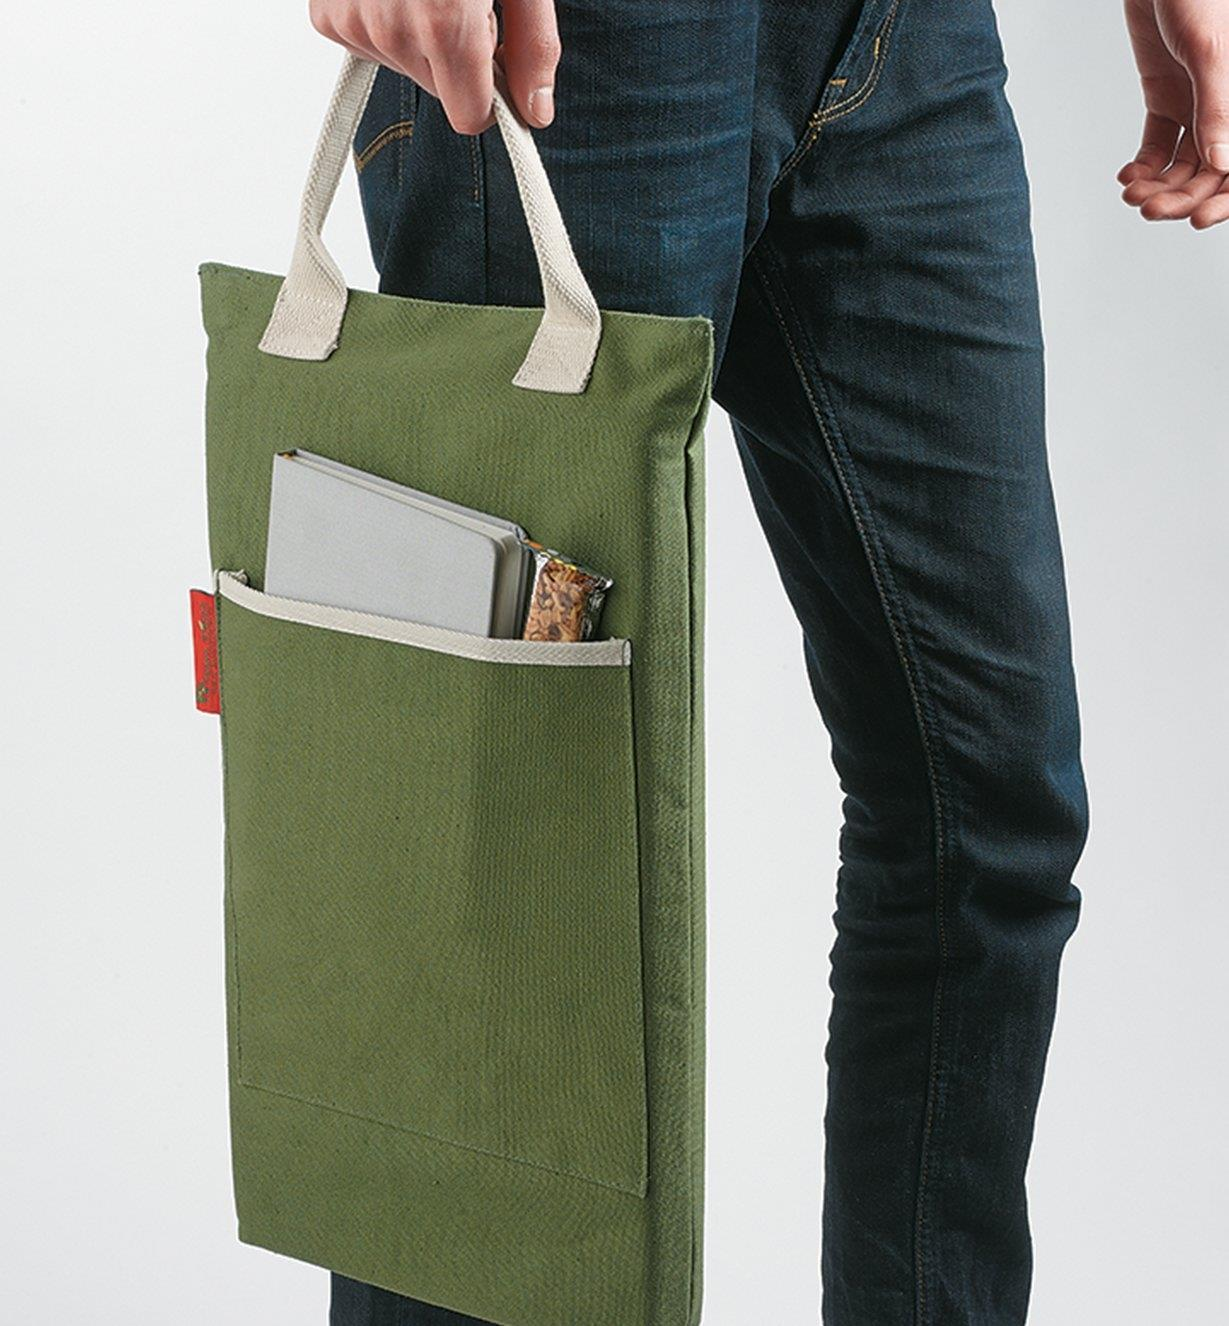 Carrying the Portable Canvas Utility Cushion by its handle